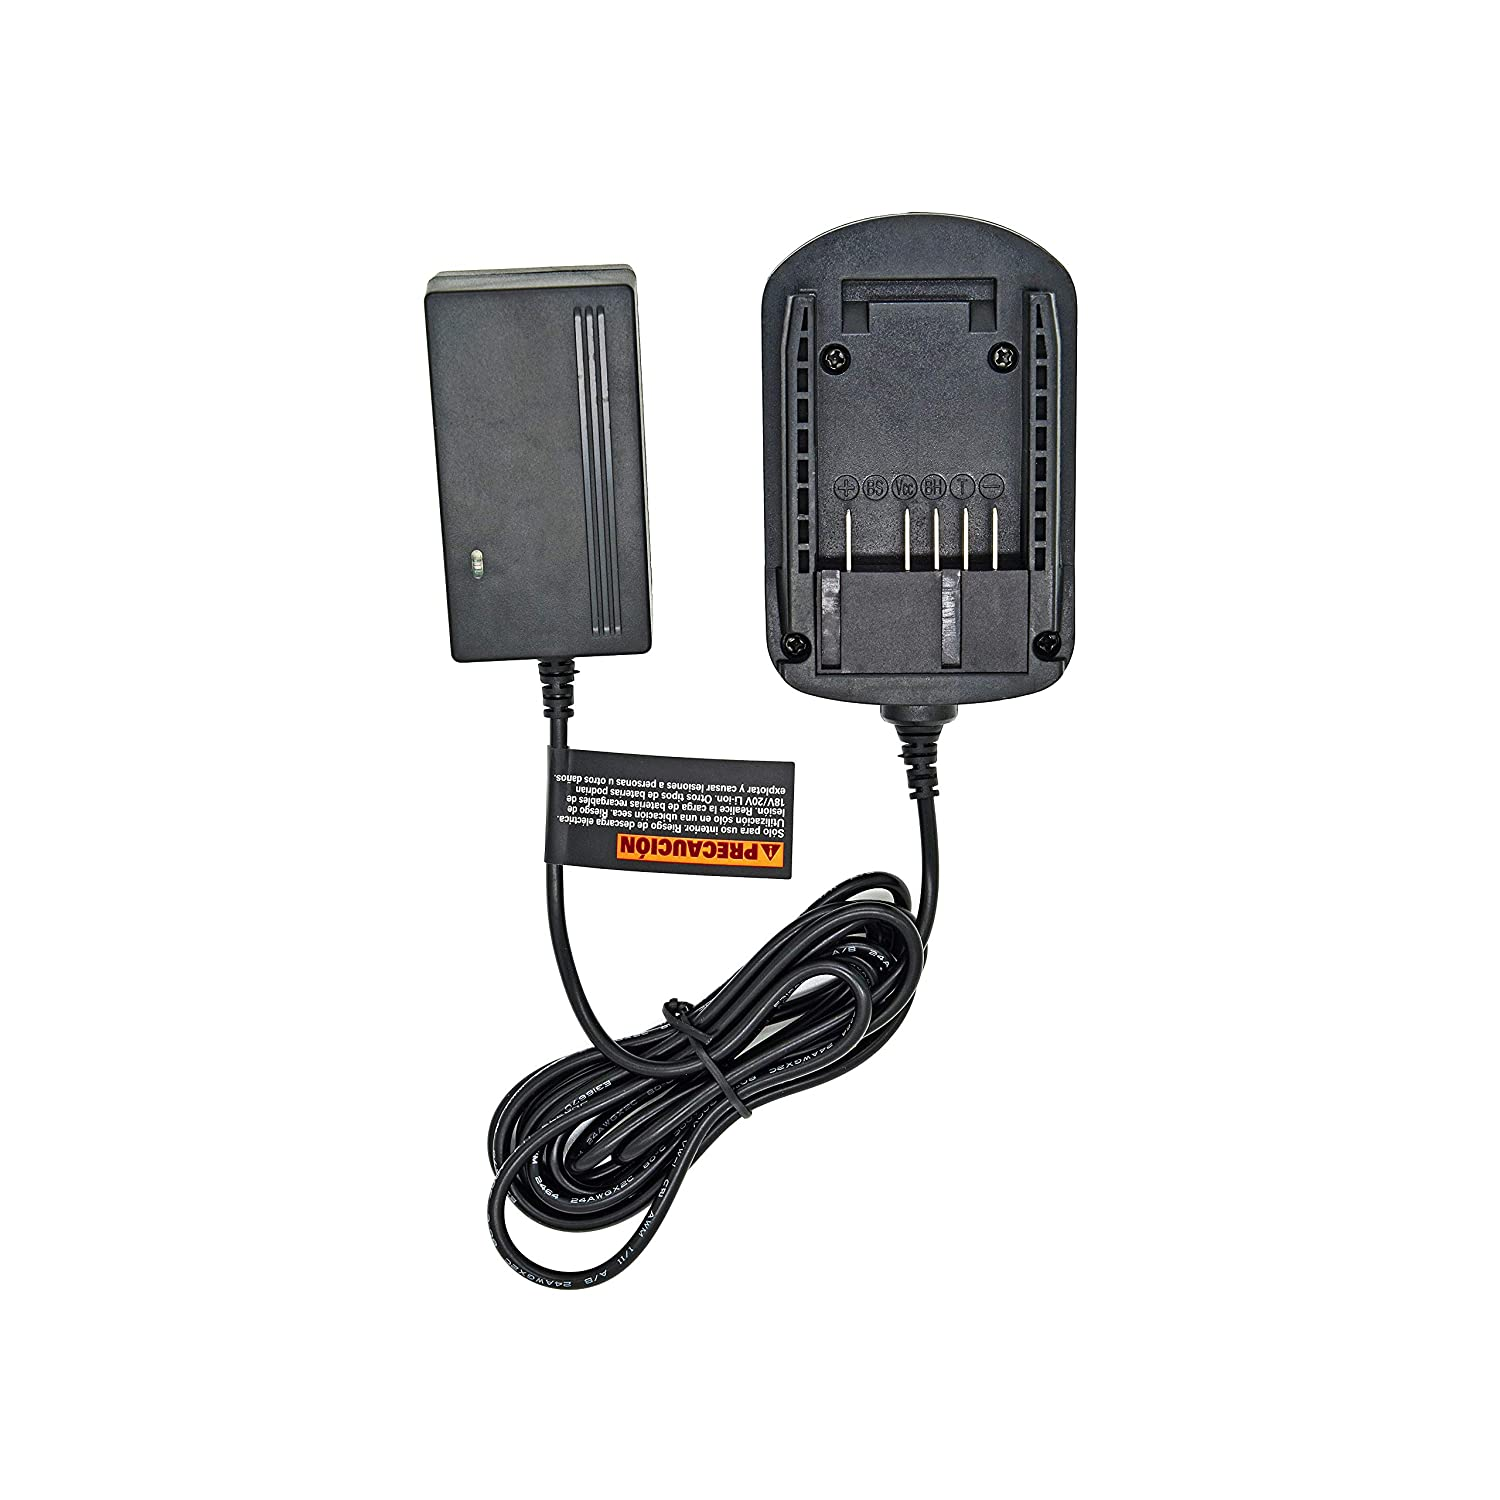 Garden NINJA Charger for Worx 18V and 20V Lithium Ion Batteries WA3520 and WA3525, Compatible with Charger WA3732 - - Amazon.com